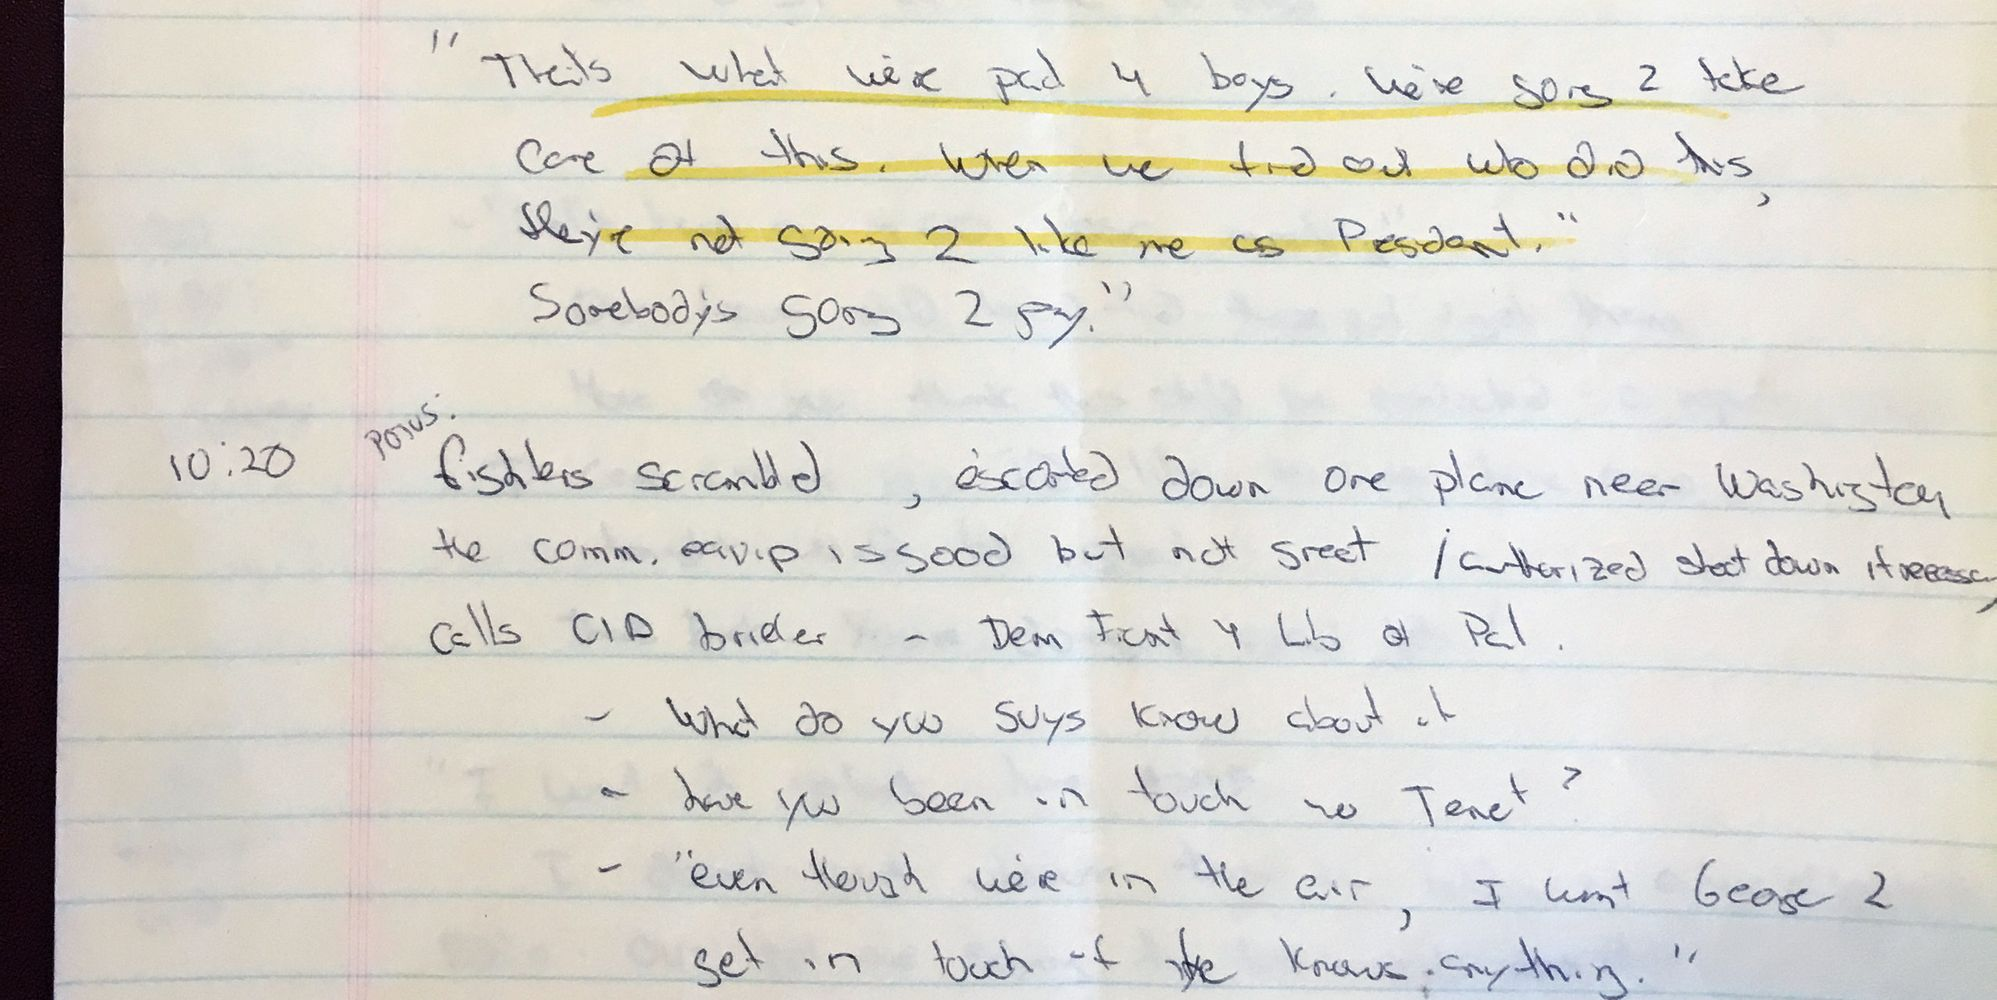 9/11 George Bush Air Force One Notes Reveal President's Reaction To Twin Towers Terrorist Attacks